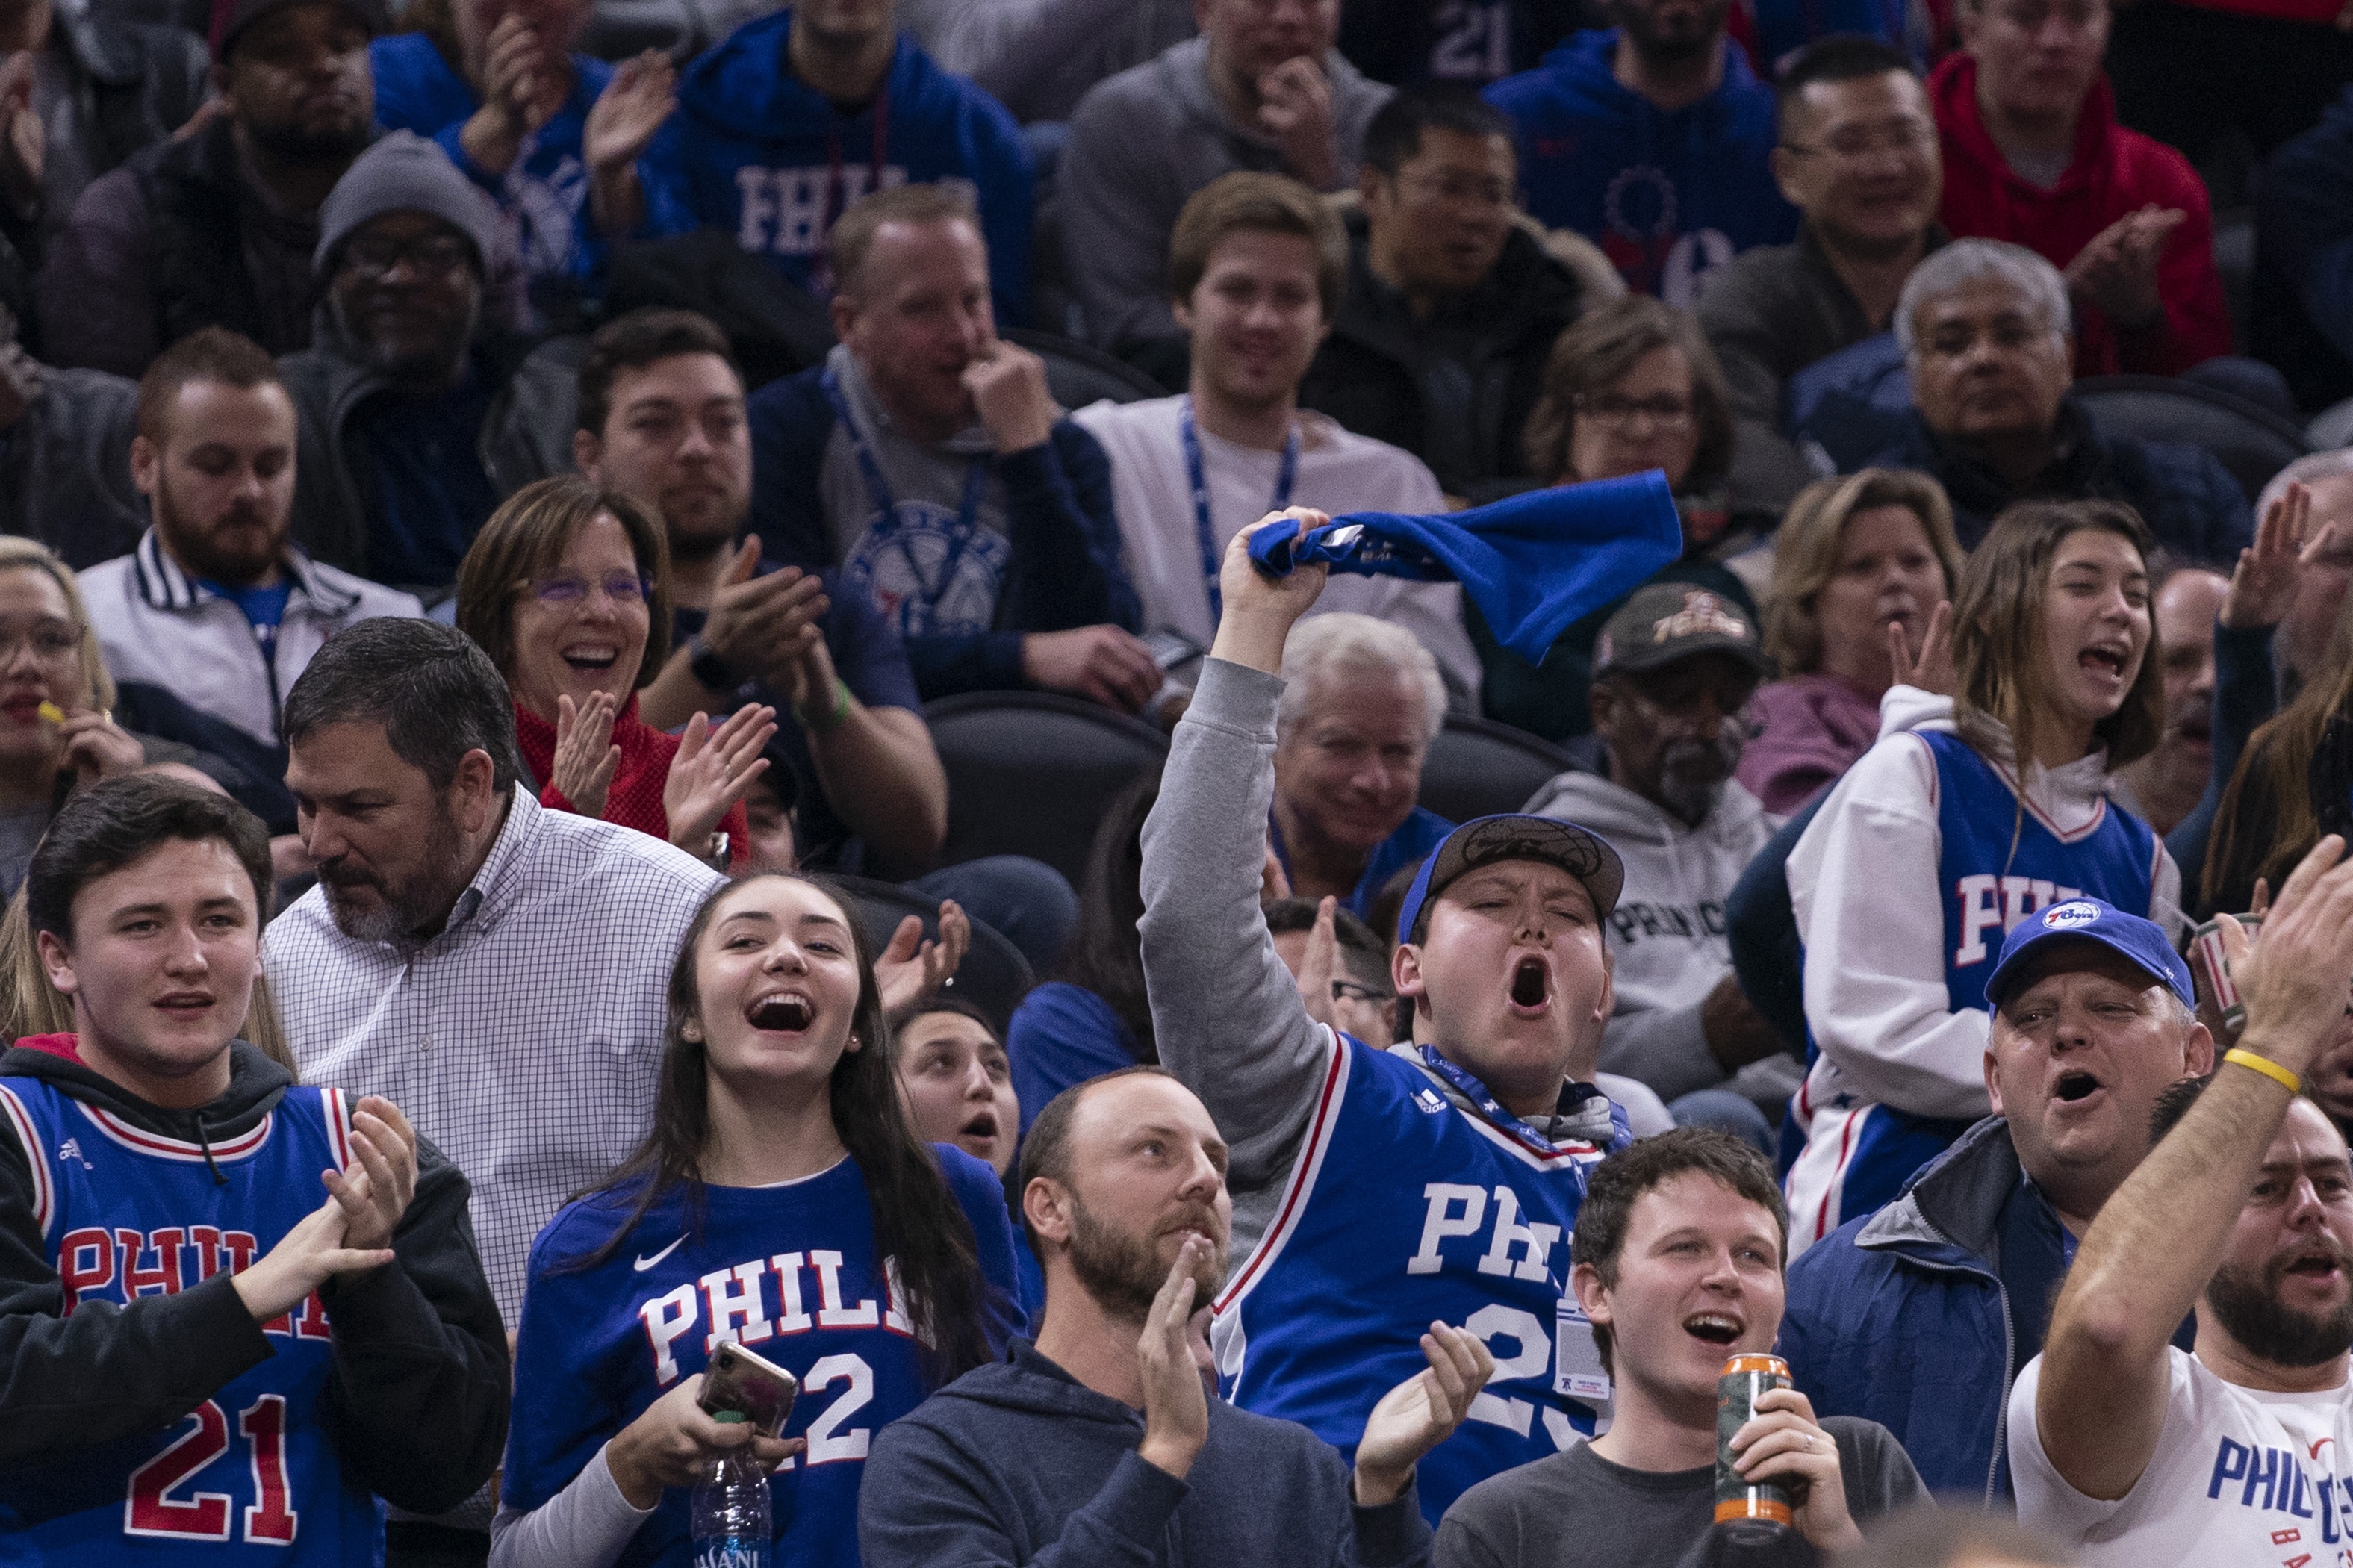 BREAKING: Philly Fans Back Starting March 1st